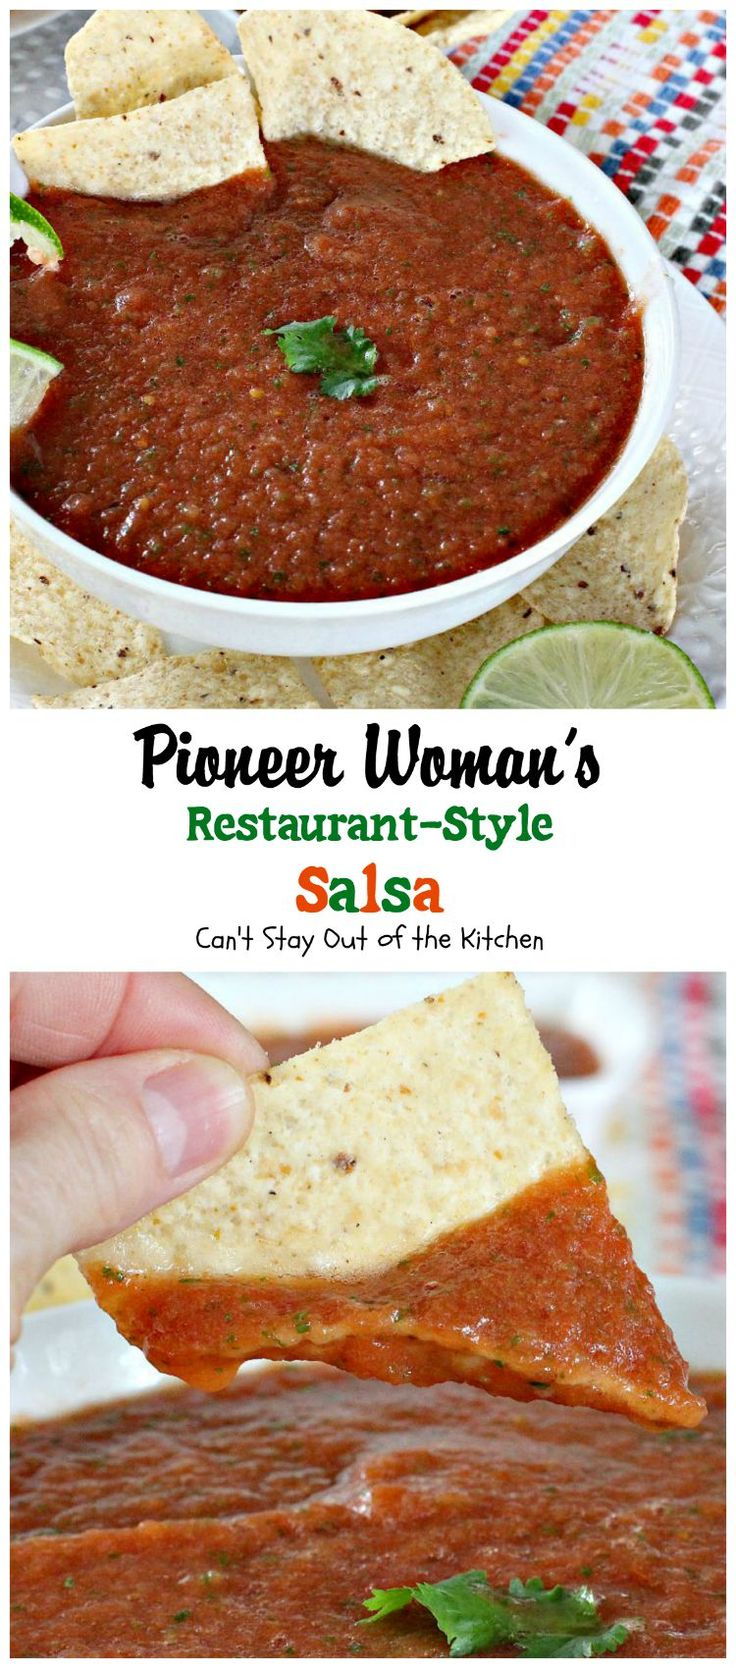 Restaurant-Style Salsa.  Restaurant-Style Salsa    Print Prep time 10 mins Total time 10 mins   This amazing salsa recipe is so quick and easy, you can whip it up in 10 minutes or less! Healthy, low calorie, gluten free and vegan. Author: Teresa Ambra - recipe from The Pioneer Woman Recipe type: Appetizer Cuisine: Tex-Mex Serves: 12 Ingredients 1 28-oz. can whole tomatoes, undrained 2 10-oz. cans diced tomatoes and green chilies, undrained ¼ cup chopped onion 1 clove garlic, minced 1 whole…